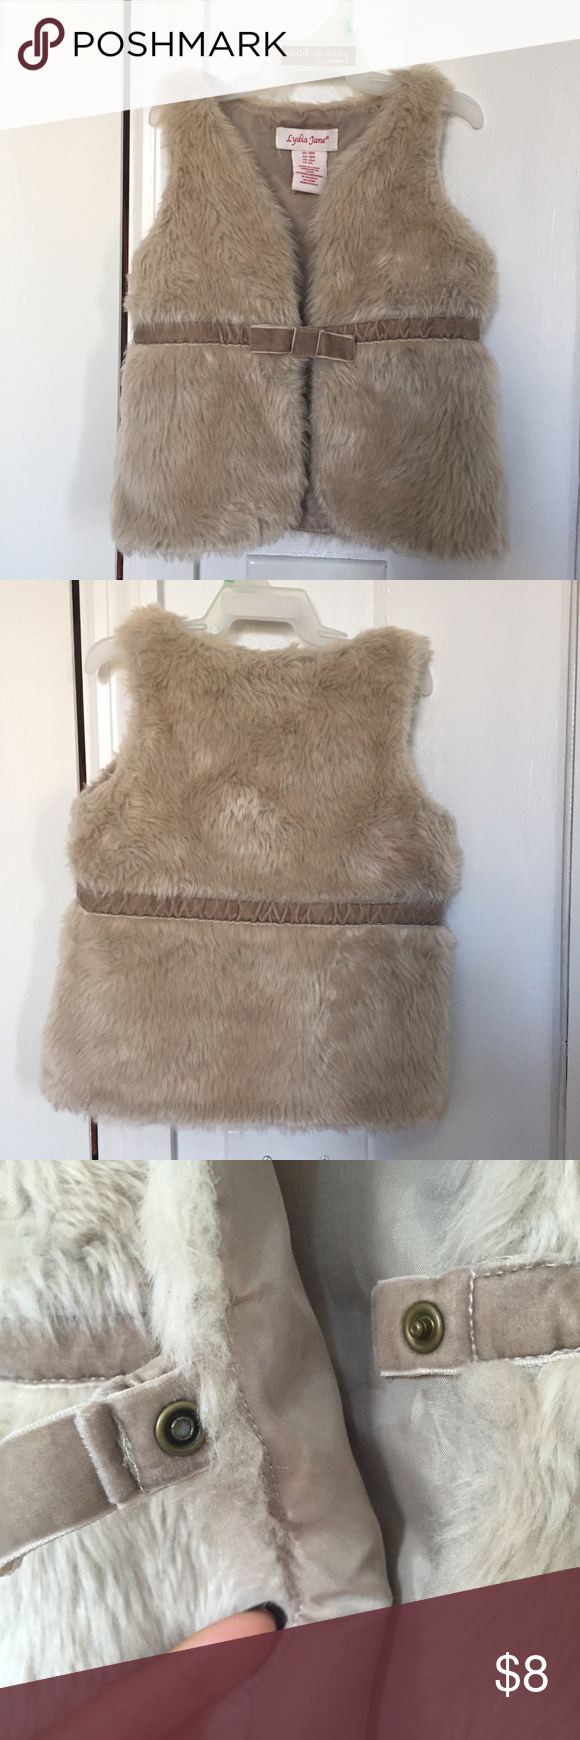 Tan Furry Vest for toddlers This super cute tan furry best has a velvety belt detail and bow snap closure as seen in the picture. Jackets & Coats Vests